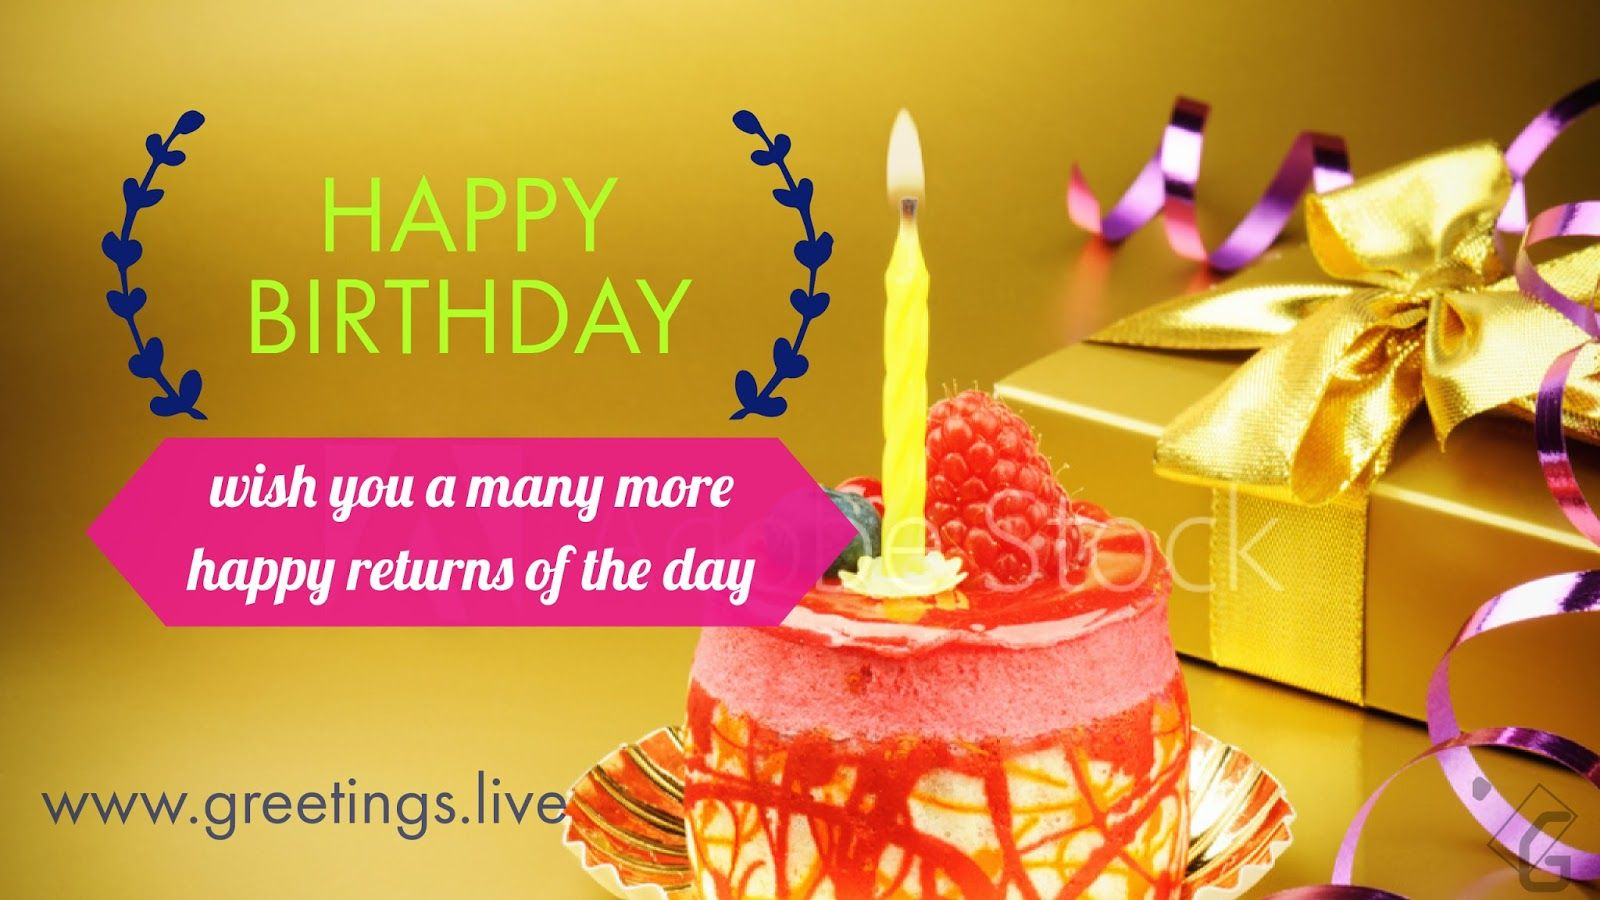 Wish You A Many More Happy Returns Of The Day Greetingslive